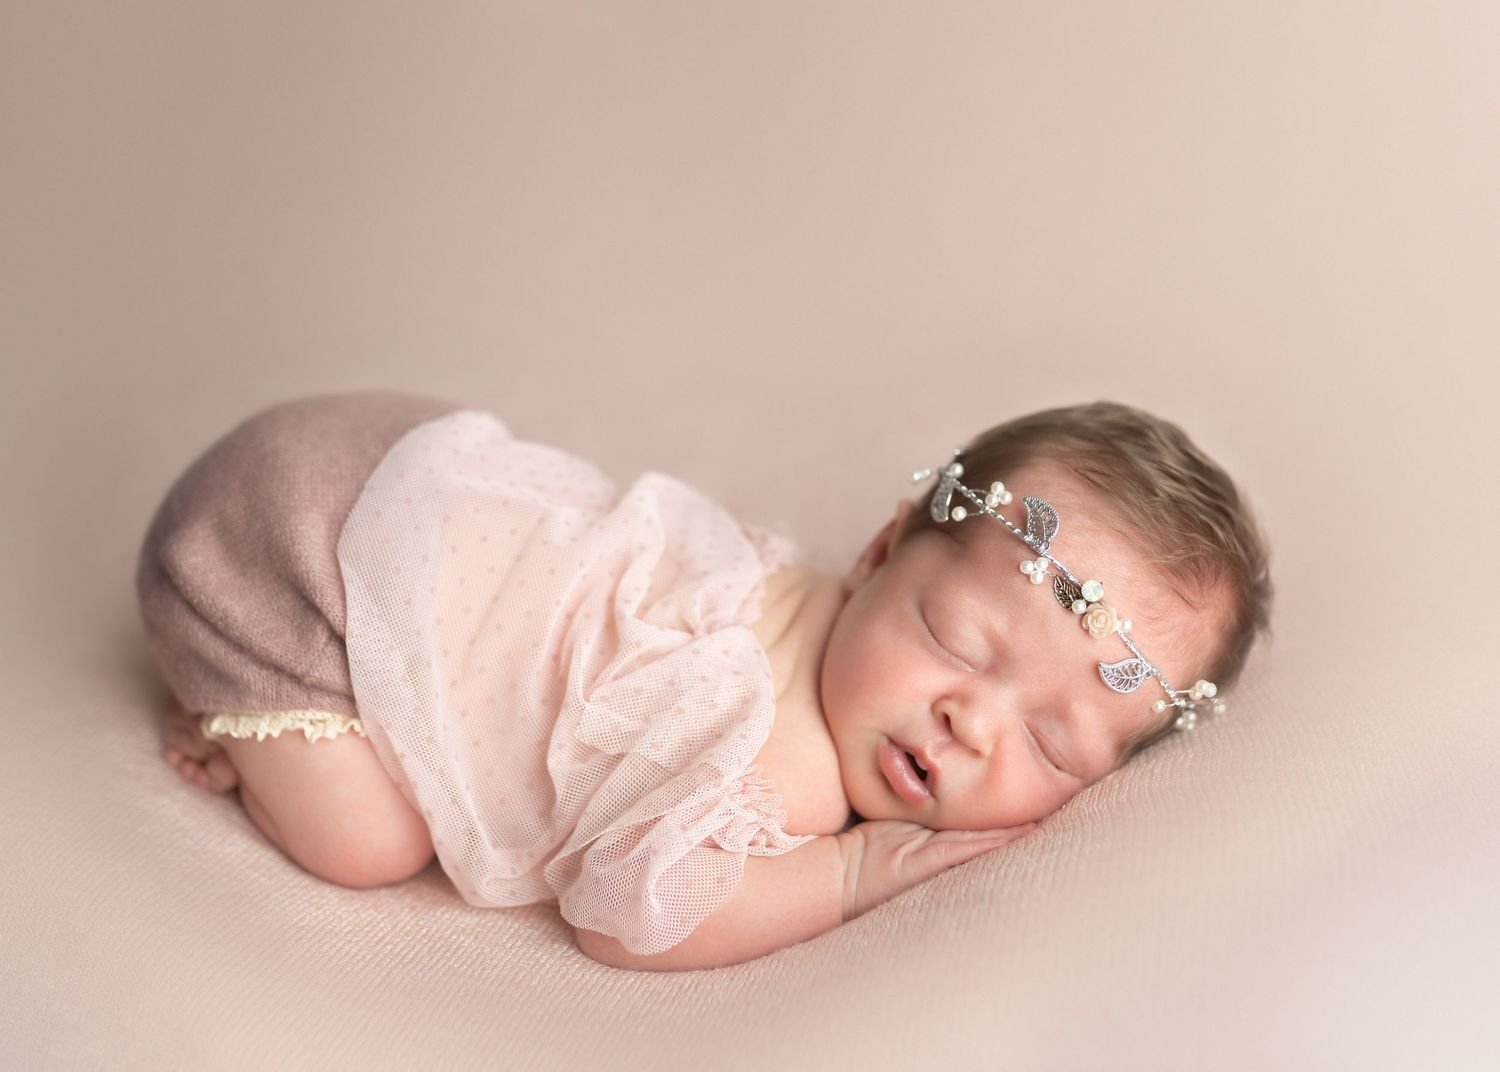 riverview, fl baby photographer